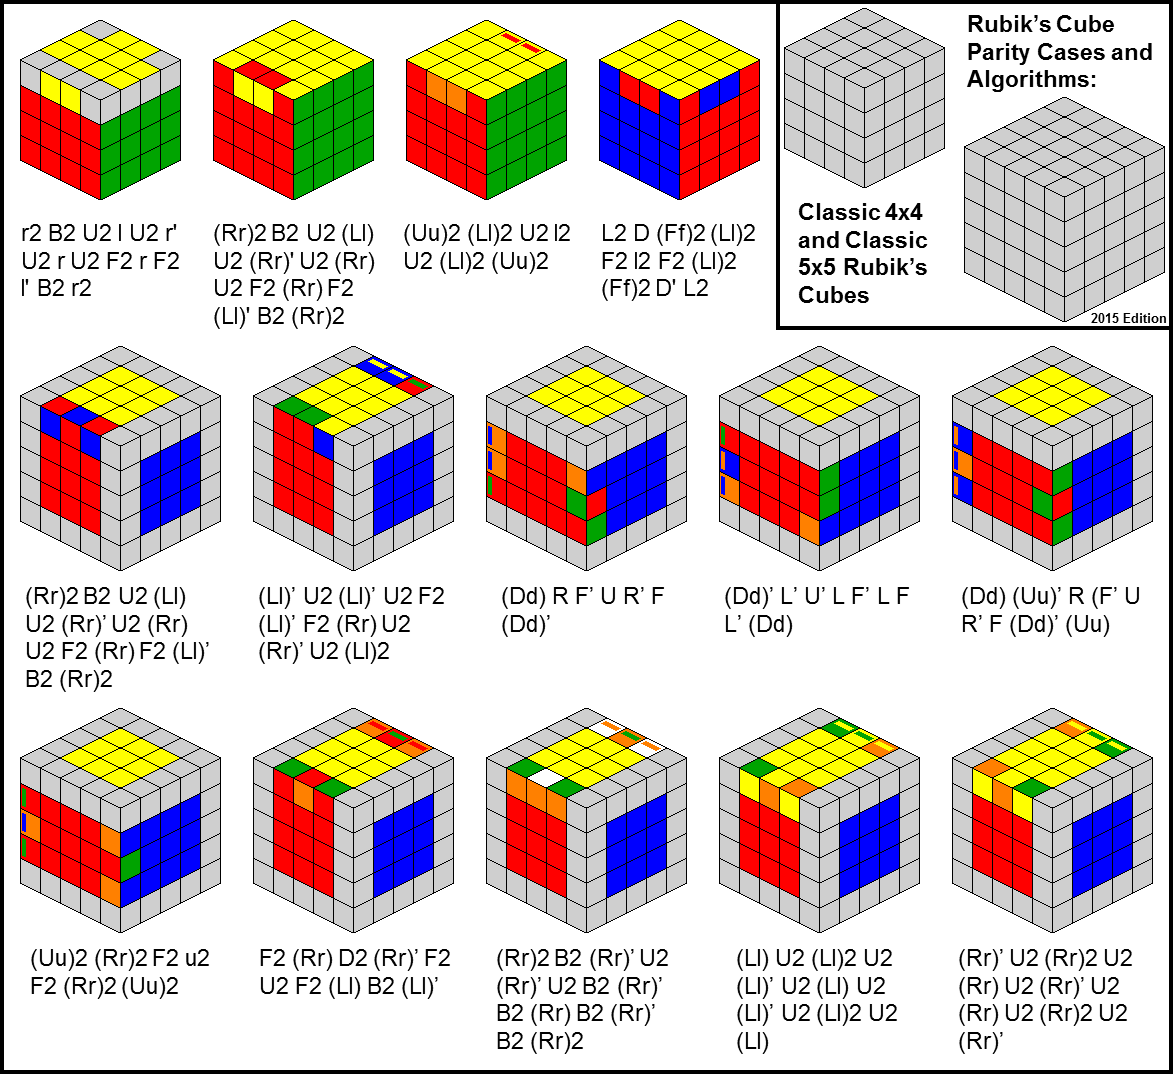 Rubik's Cube Parity Cases and Algorithms: Classic 4x4 and Classic